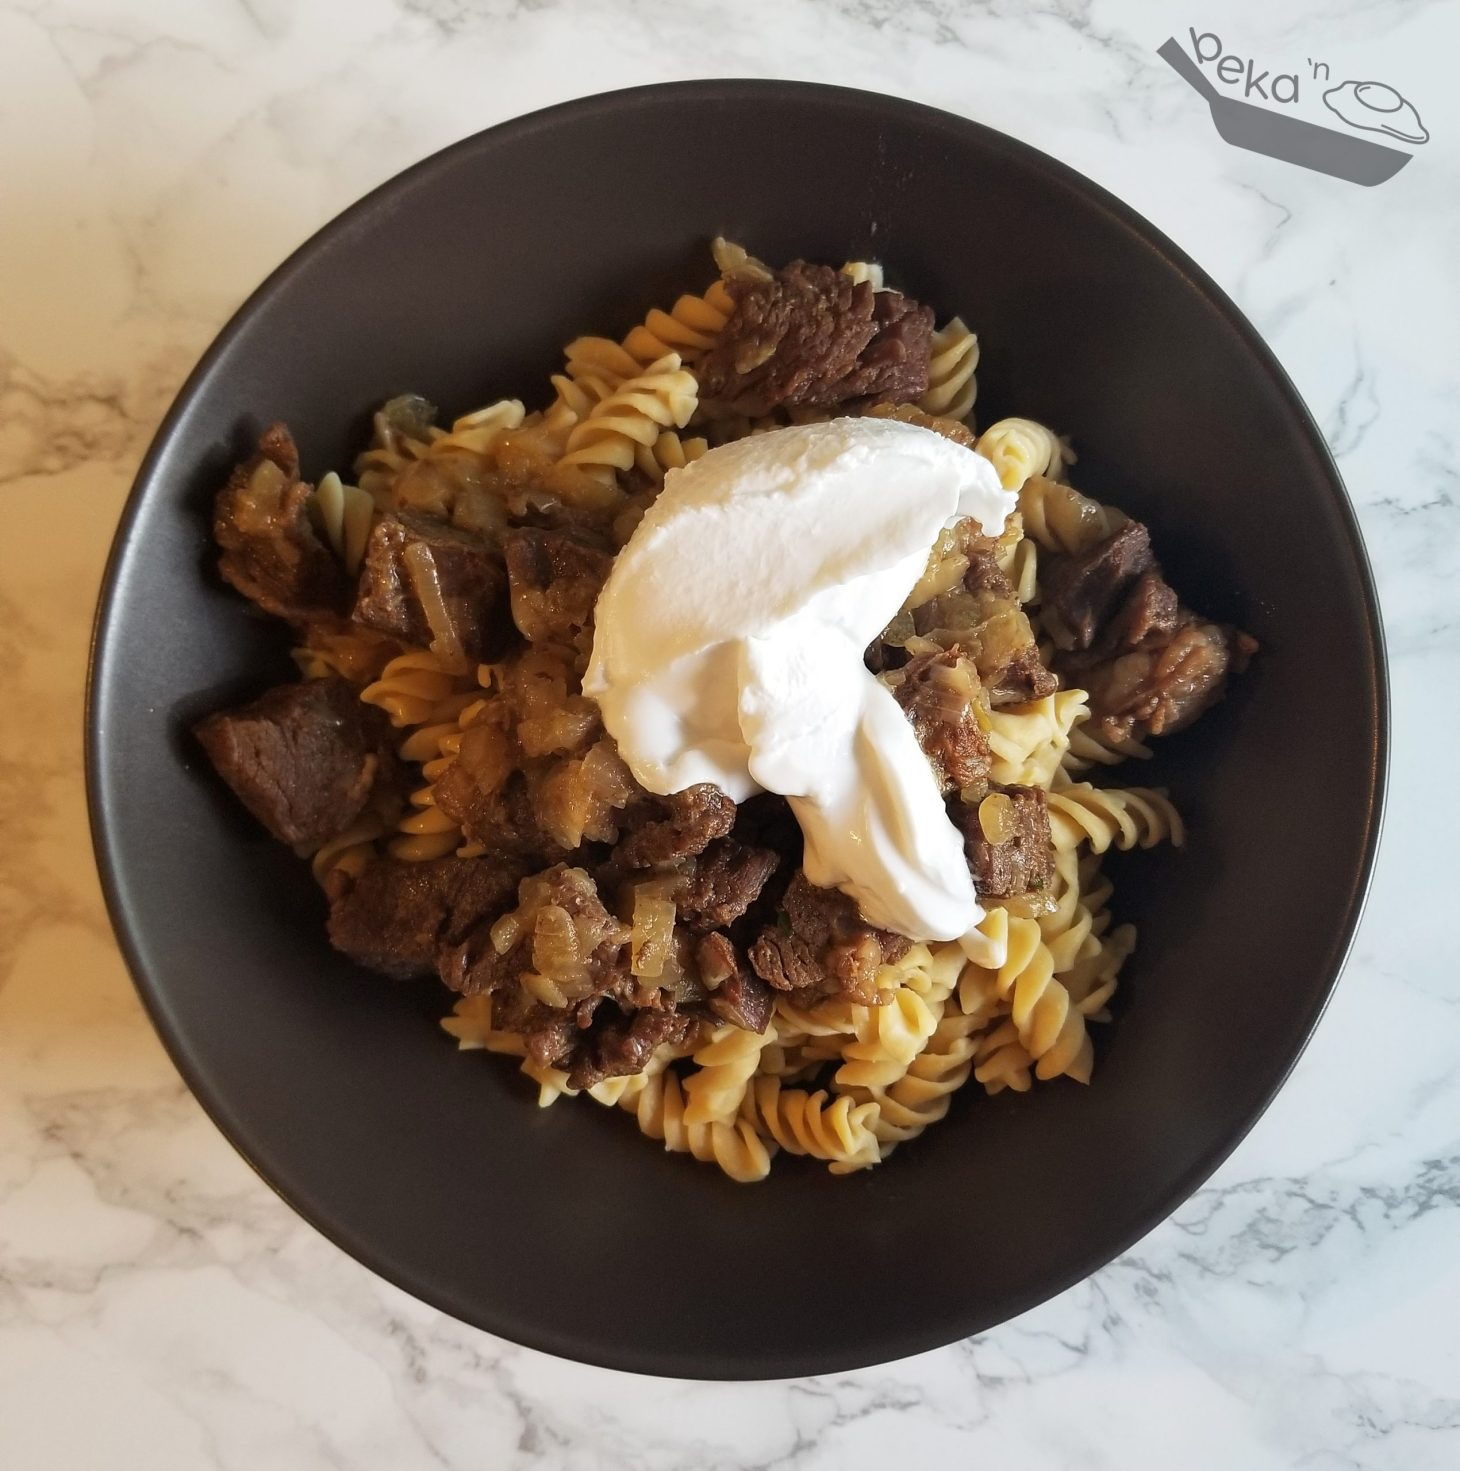 An overhead shot of my homemade beef stroganoff in a brown ceramic bowl on a white marble background. In the bowl is also coconut milk yogurt and red lentil pasta, but it has not yet been mixed together.